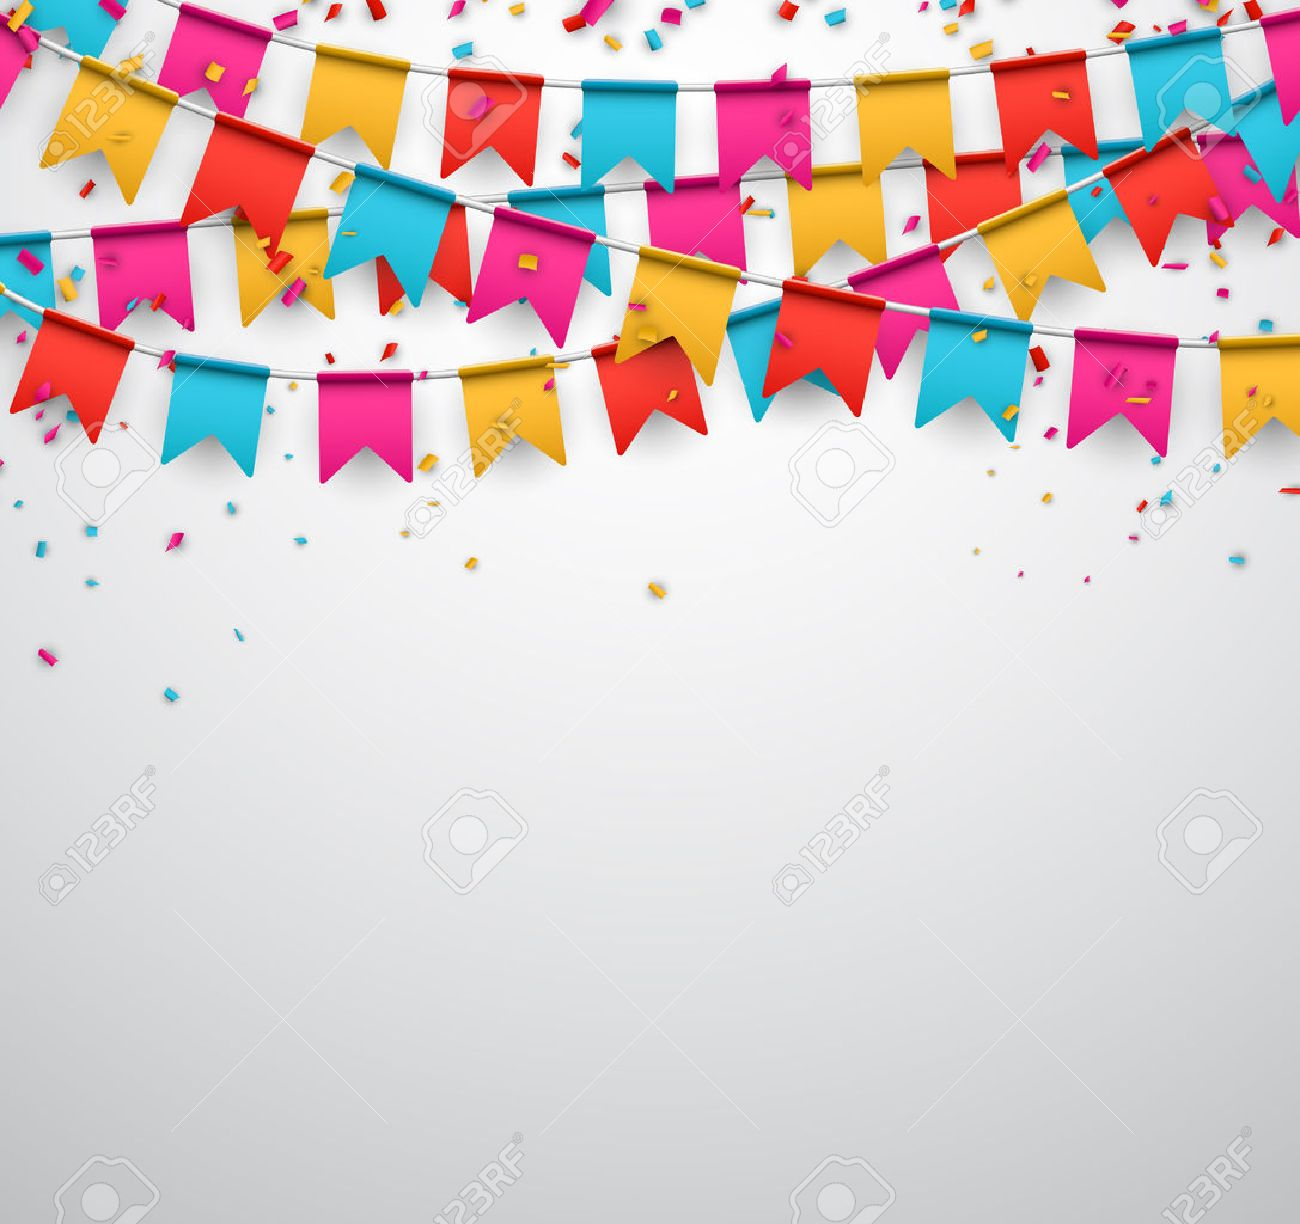 Celebrate banner. Party flags with confetti. Vector illustration. Stock Vector - 36472221